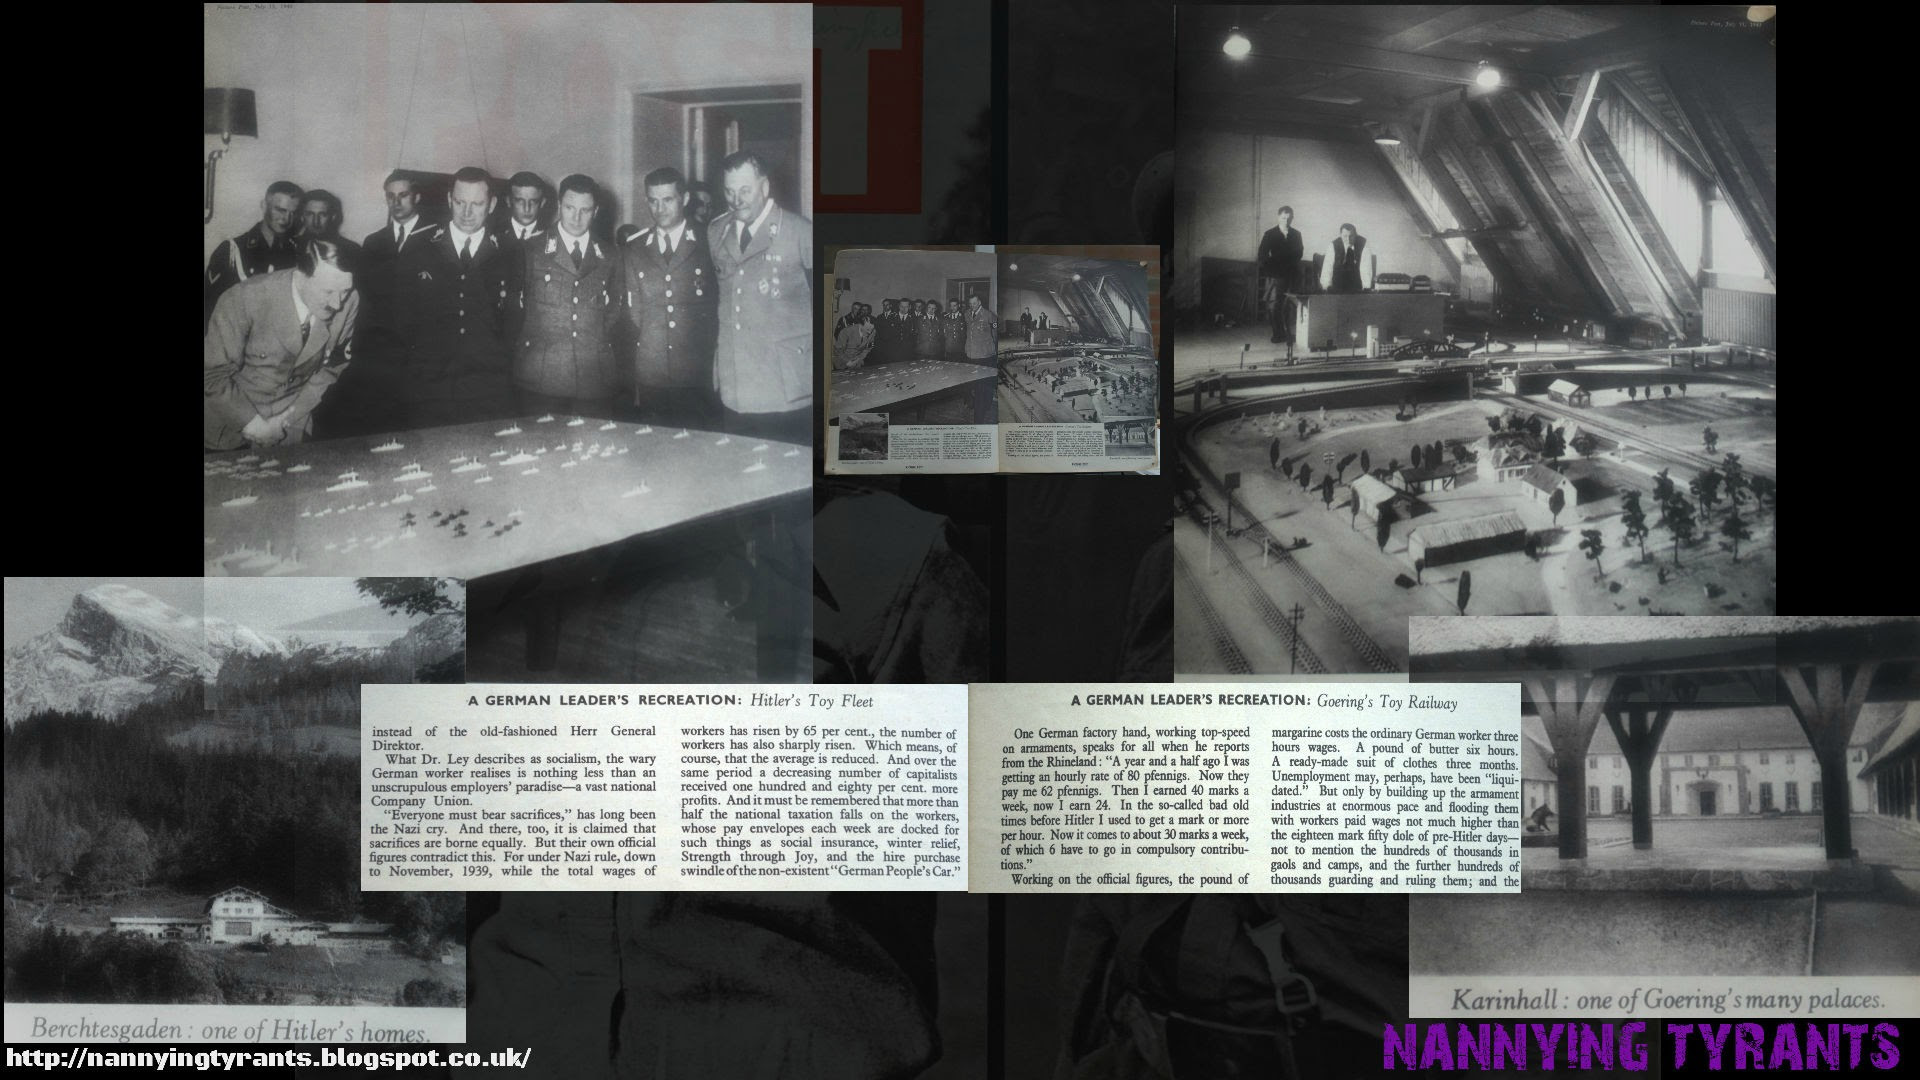 What We Are Fighting For - Adolf Hitler and Hermann Goering with their toys